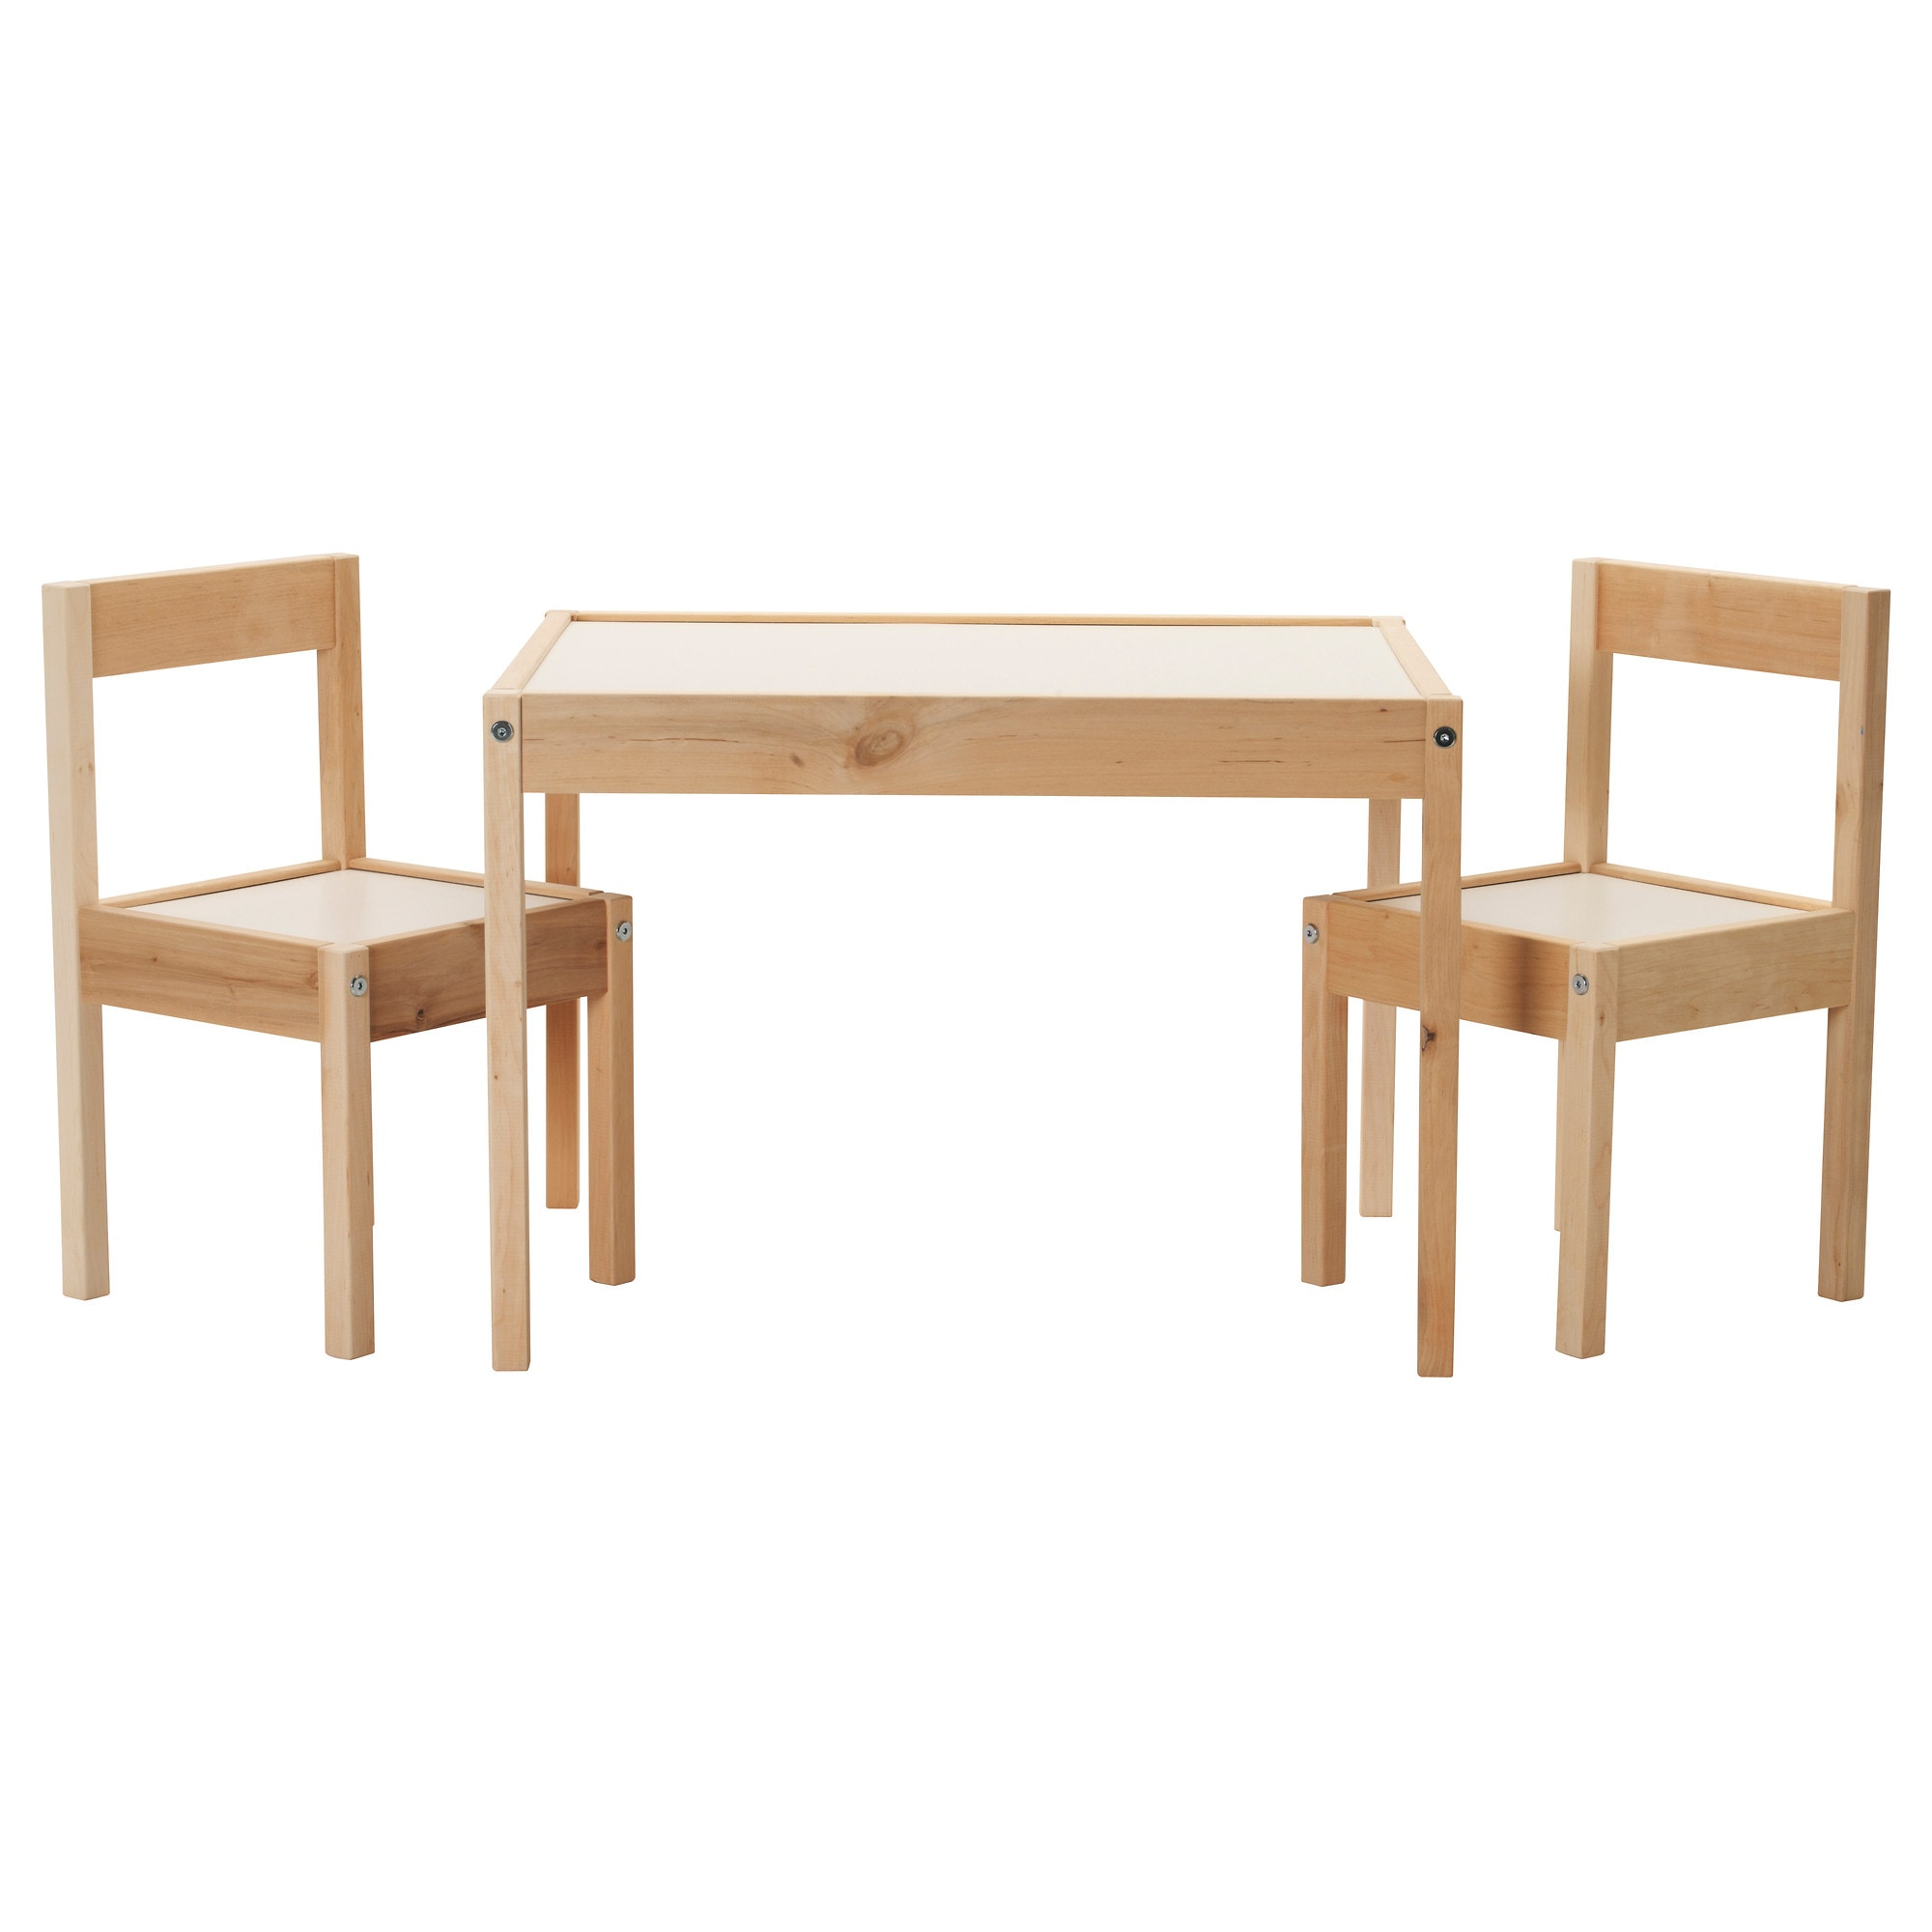 Chair drawing for kids - L Tt Children S Table And 2 Chairs White Pine Table Length 24 3